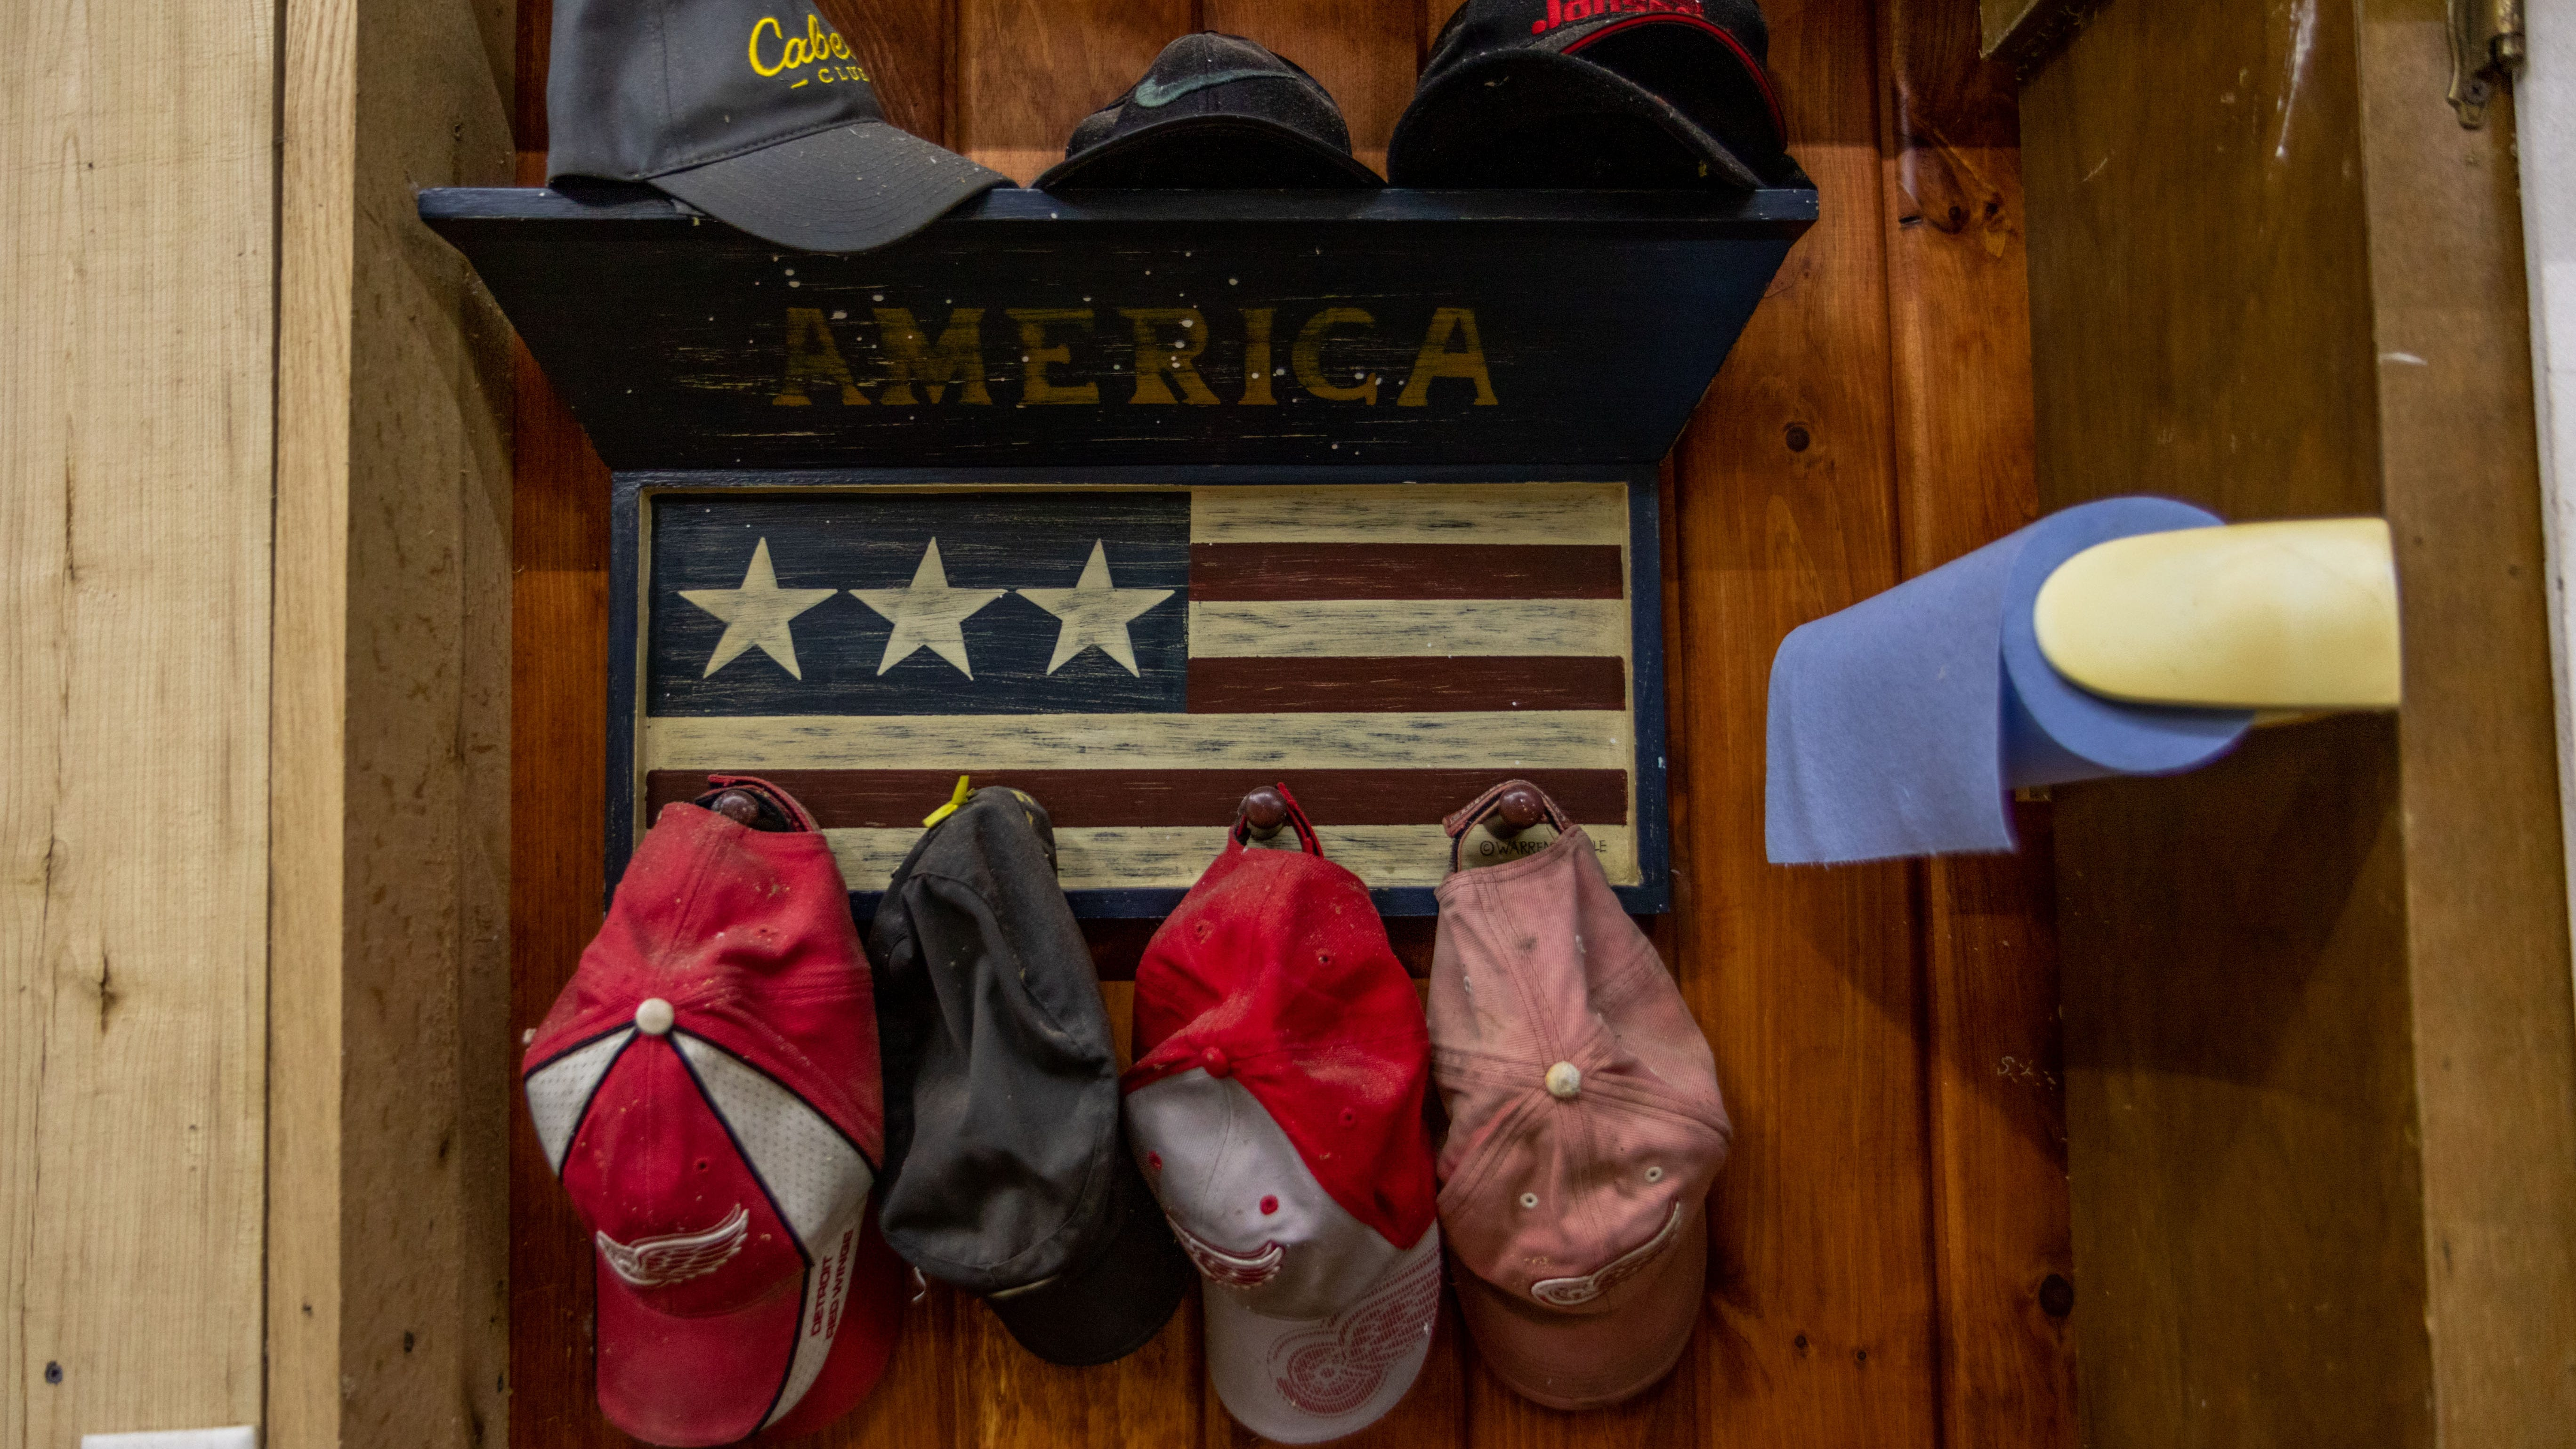 Gerald Keen, a Detroit Red Wings fan, keeps a collection of Red Wings hats, posters and other memorabilia in his shop. The Keen's are on a mission to help Gerald's former Afghan interpreter get a special visa to come to the U.S. before American forces withdraw from Afghanistan by Sept. 11.